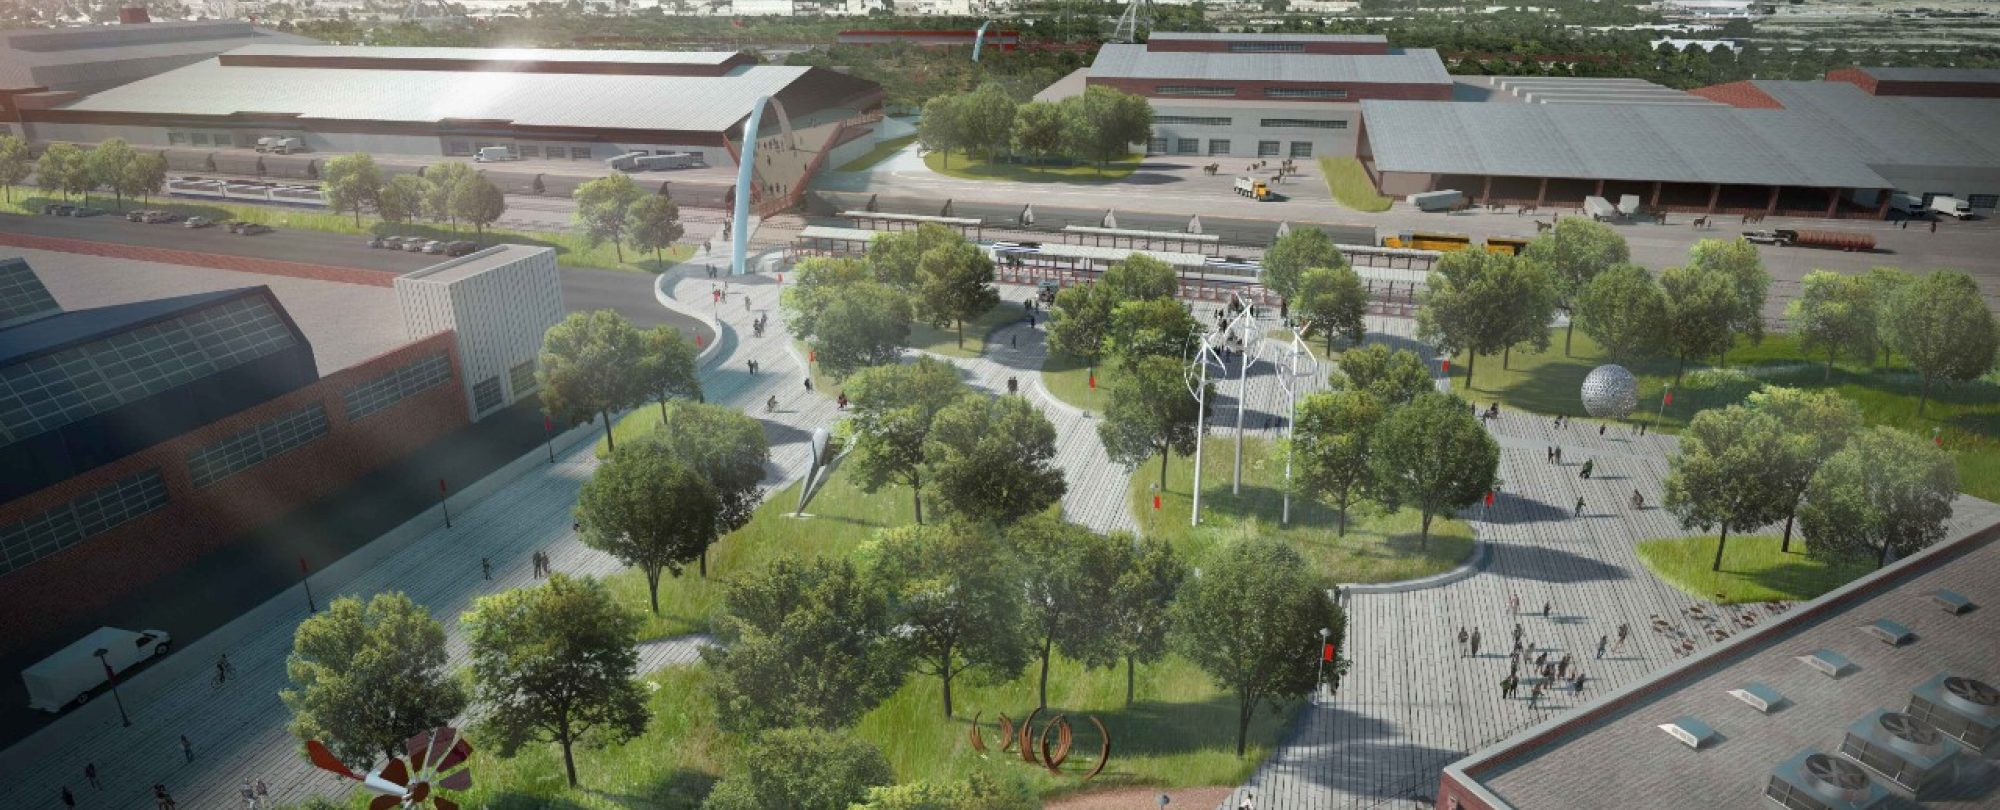 """""""With 250 acres of redeveloped land, the National Western Complex will support Denver's global standing as a world-class hub for agriculture and innovation.""""   -City and County of Denver"""